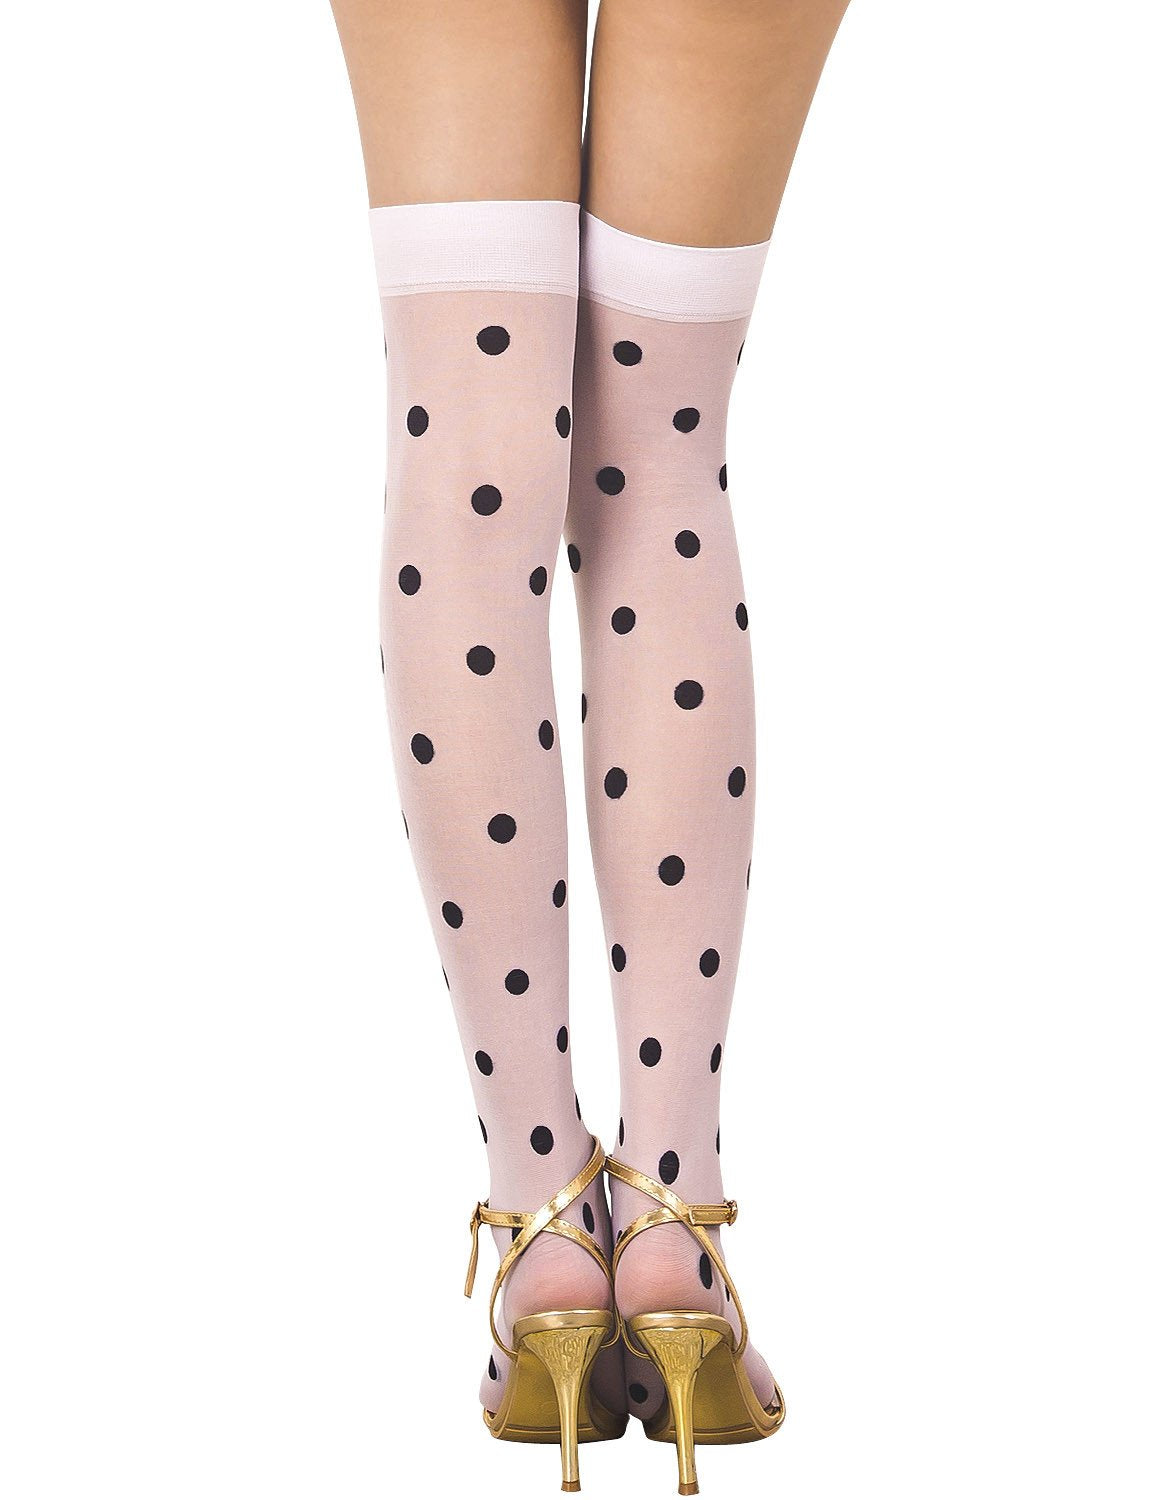 Women's Polka Dots Seamless Stylish Stocking Thigh High Hold-up Stockings, Size: One Size, Off White